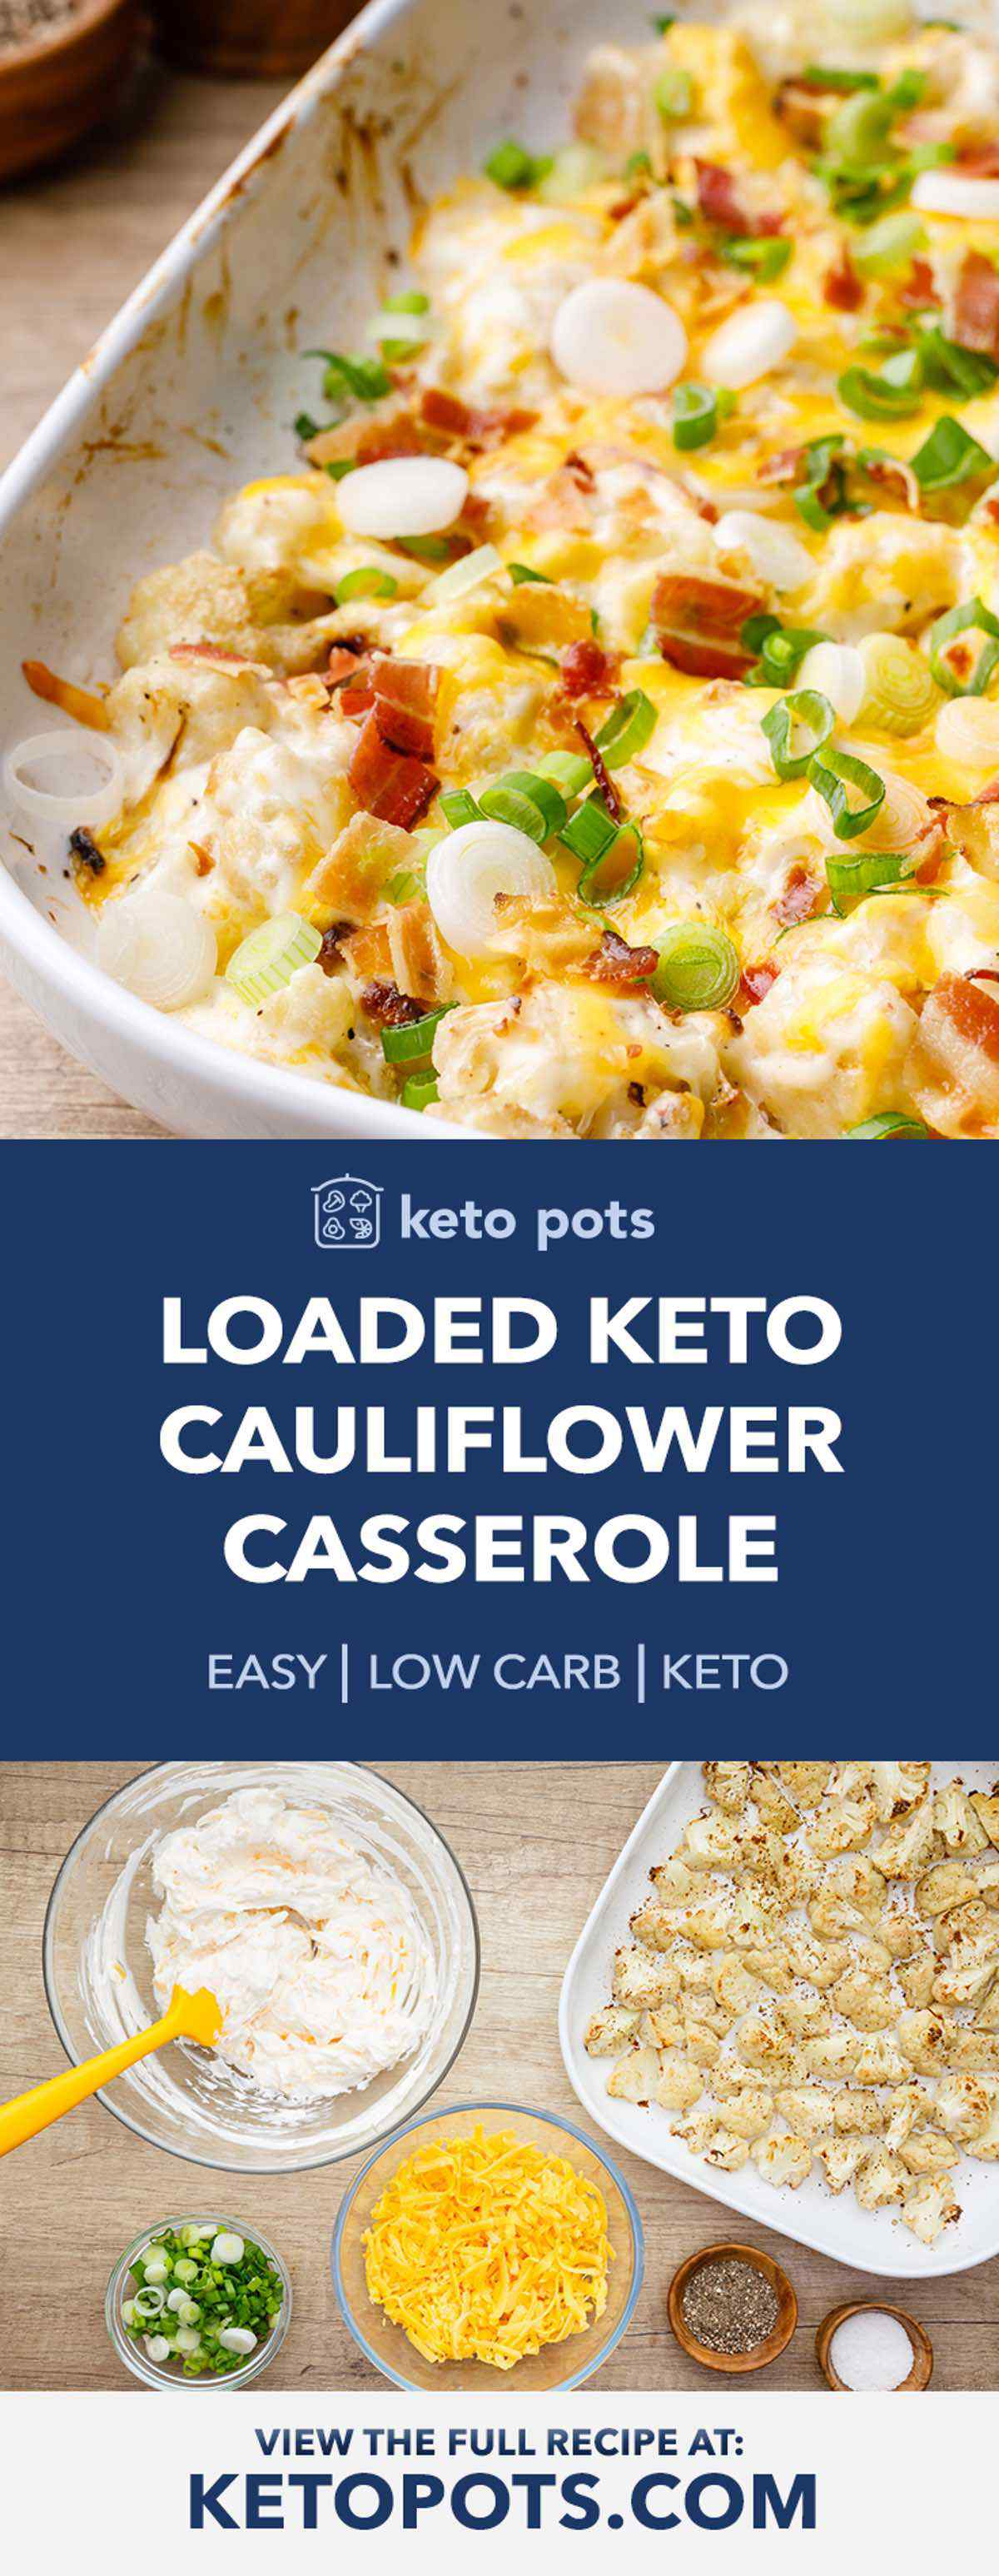 Cheesy Twice Baked Loaded Keto Cauliflower Casserole